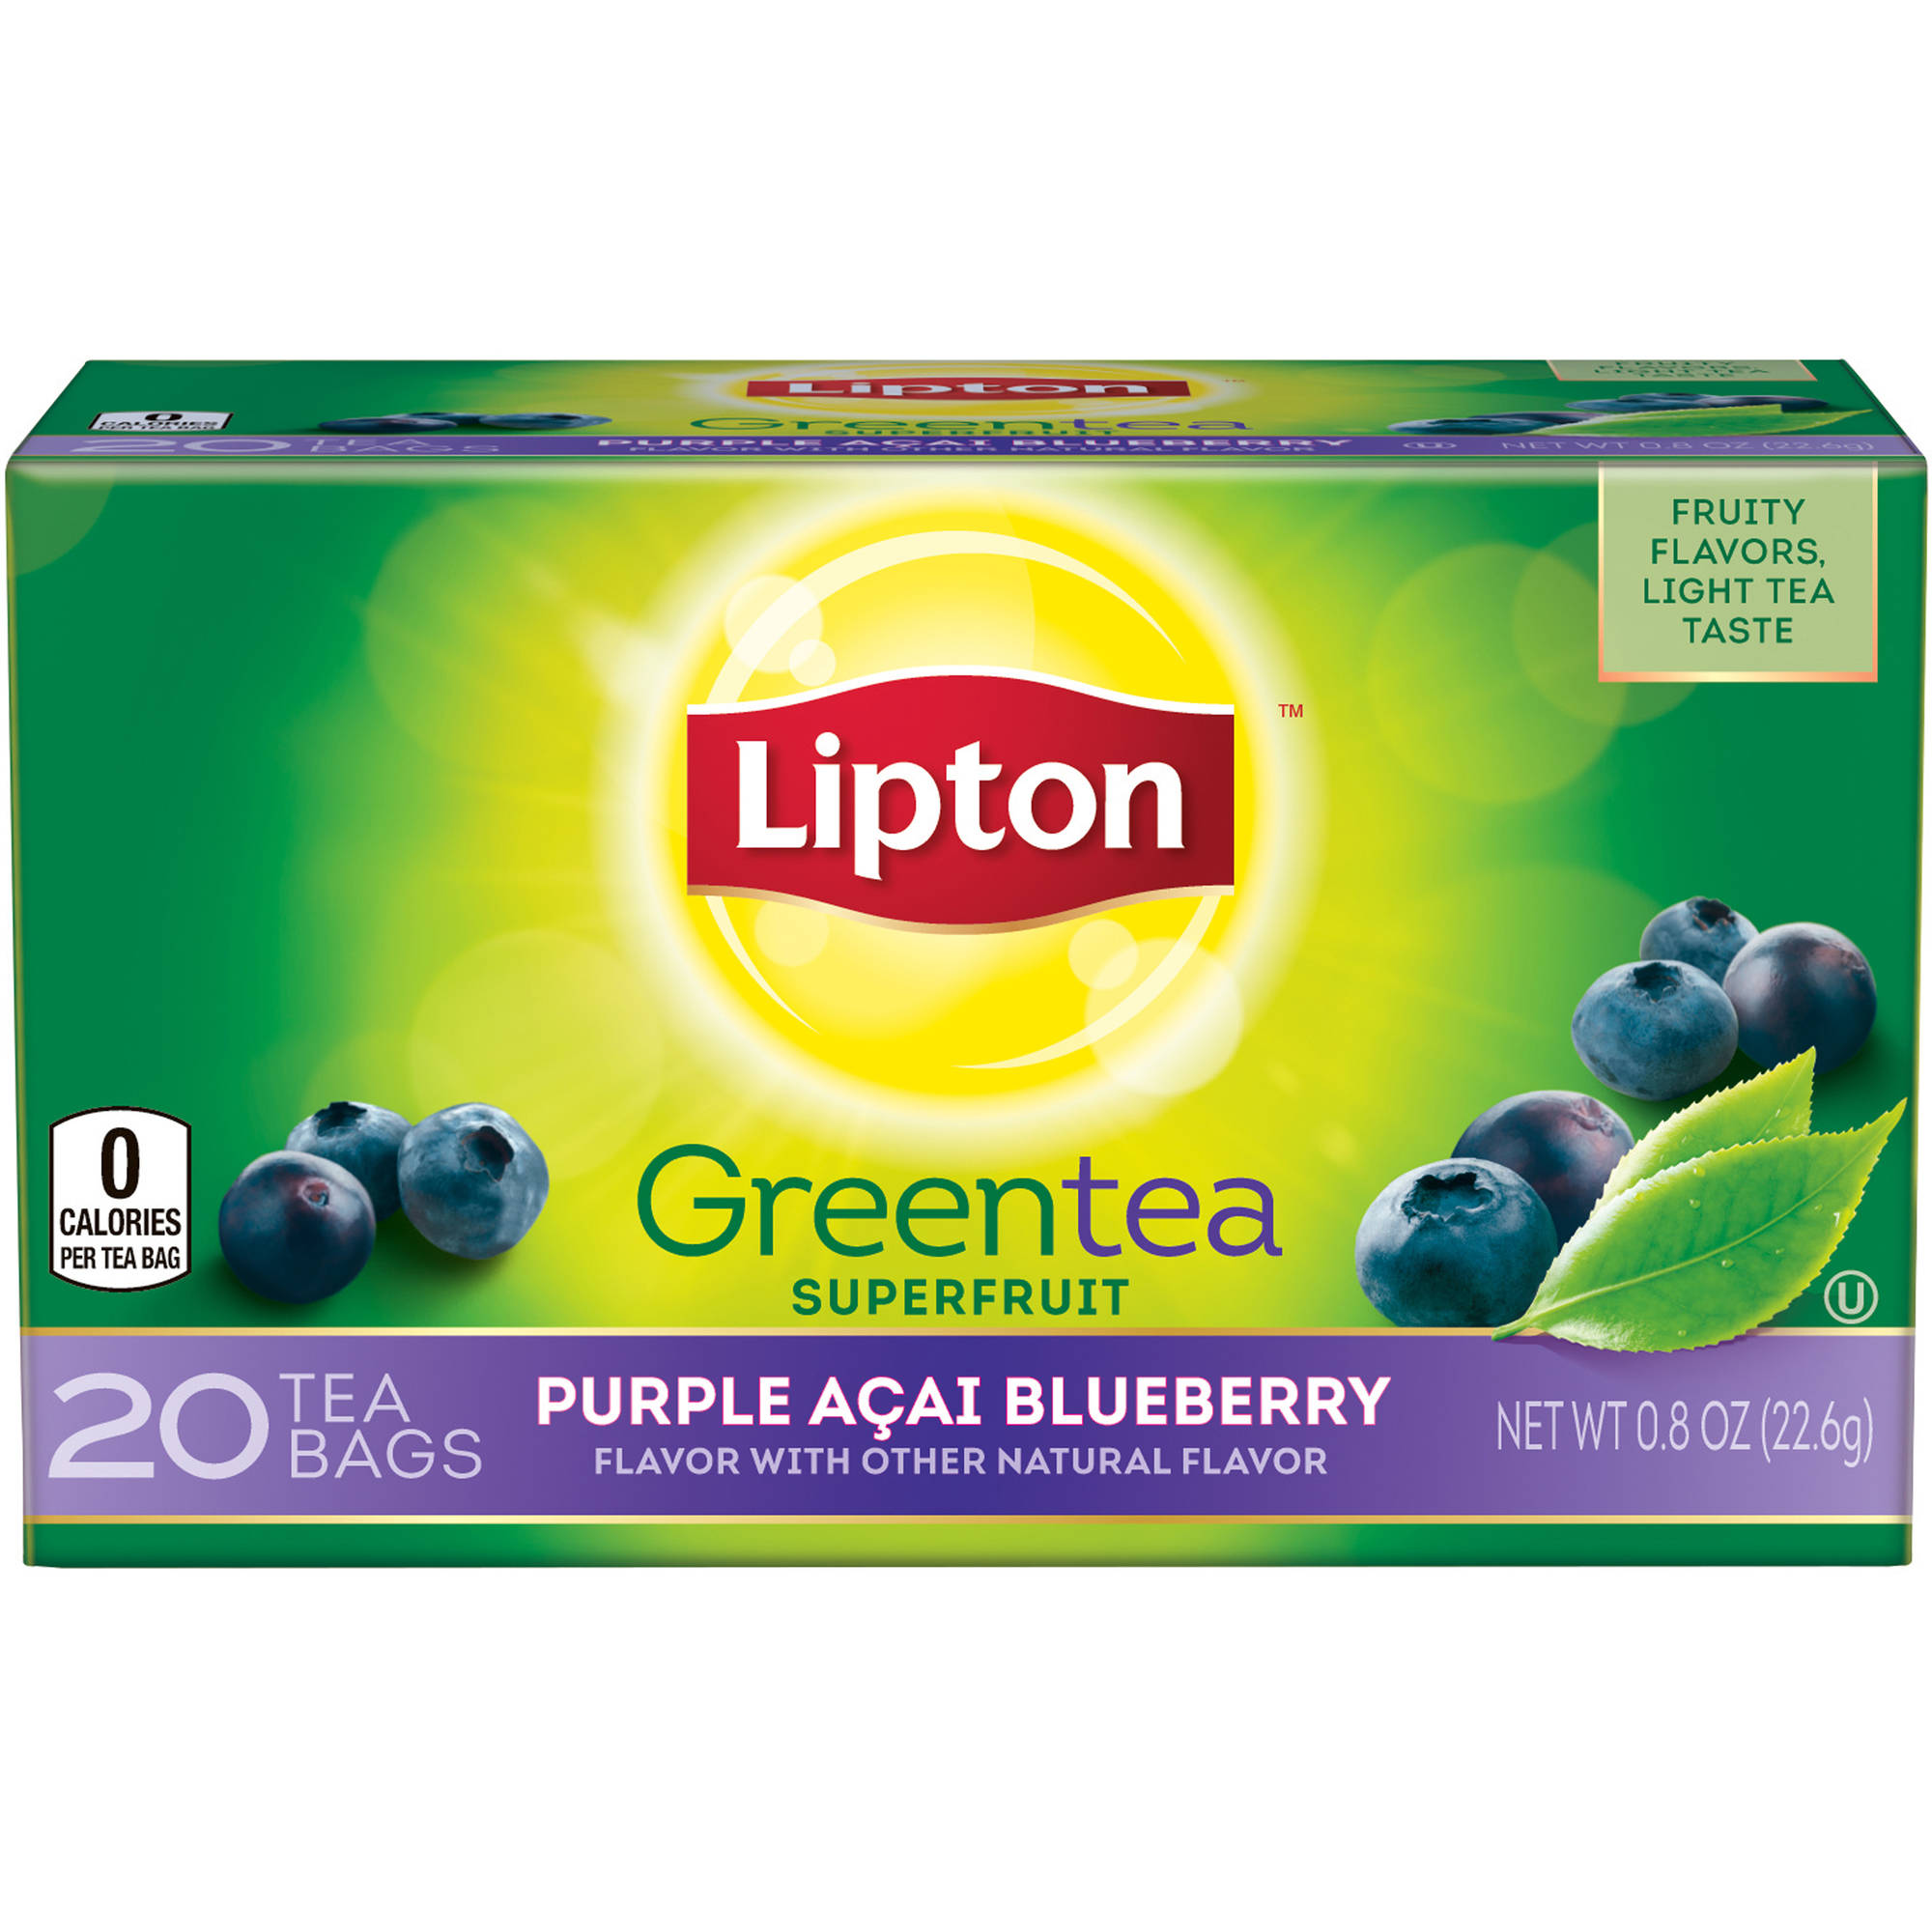 Lipton Purple Acai Blueberry Green Tea Bags, 20 ct